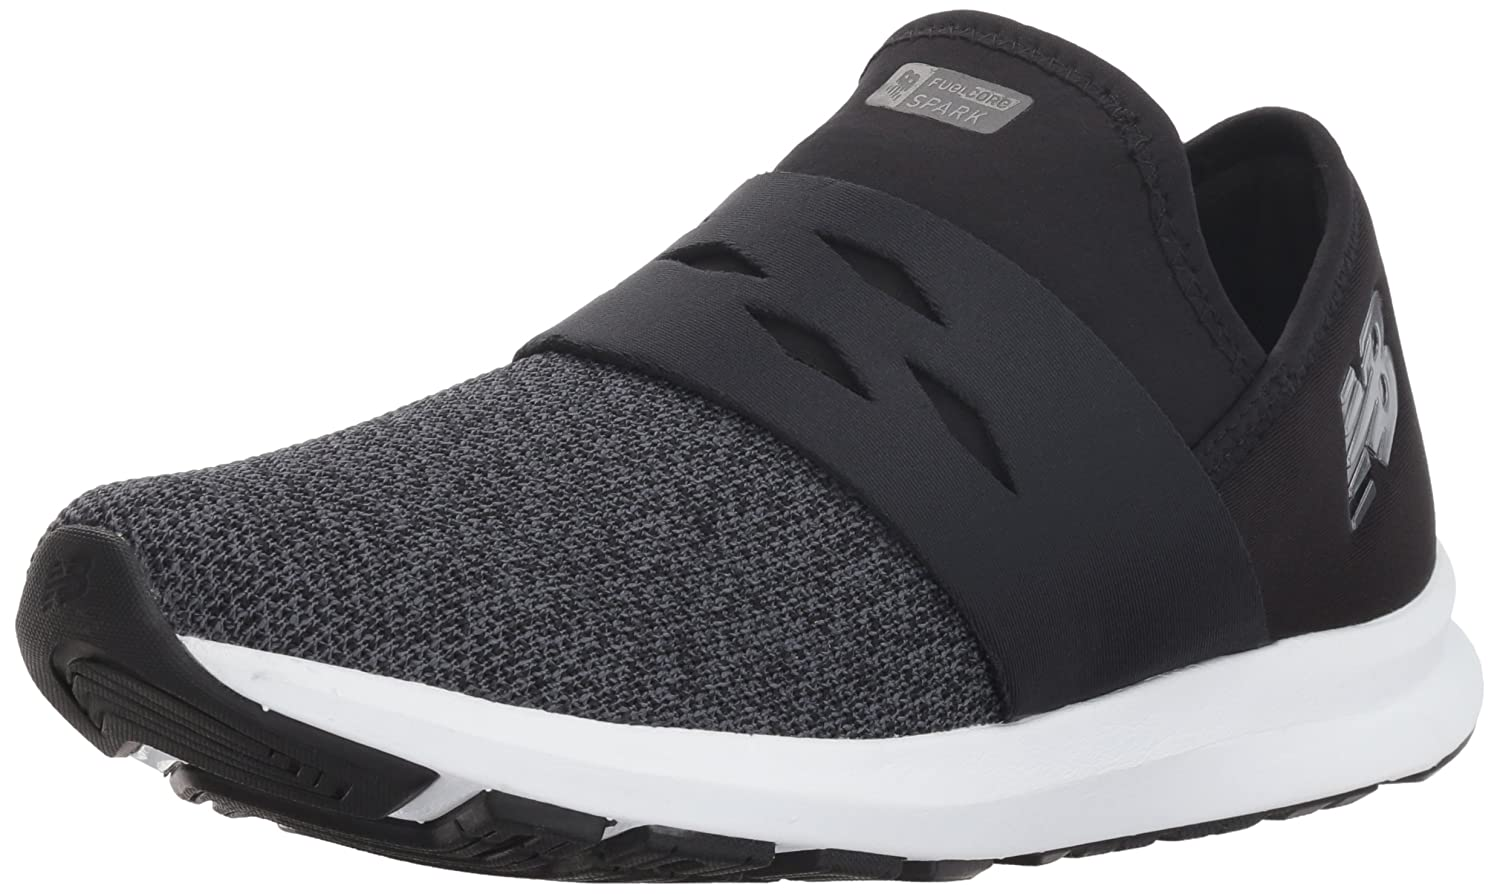 New Trainer Balance Women's SPK V1 FuelCore Cross Trainer New B075R3RJ37 6.5 M US|Black a0e45d